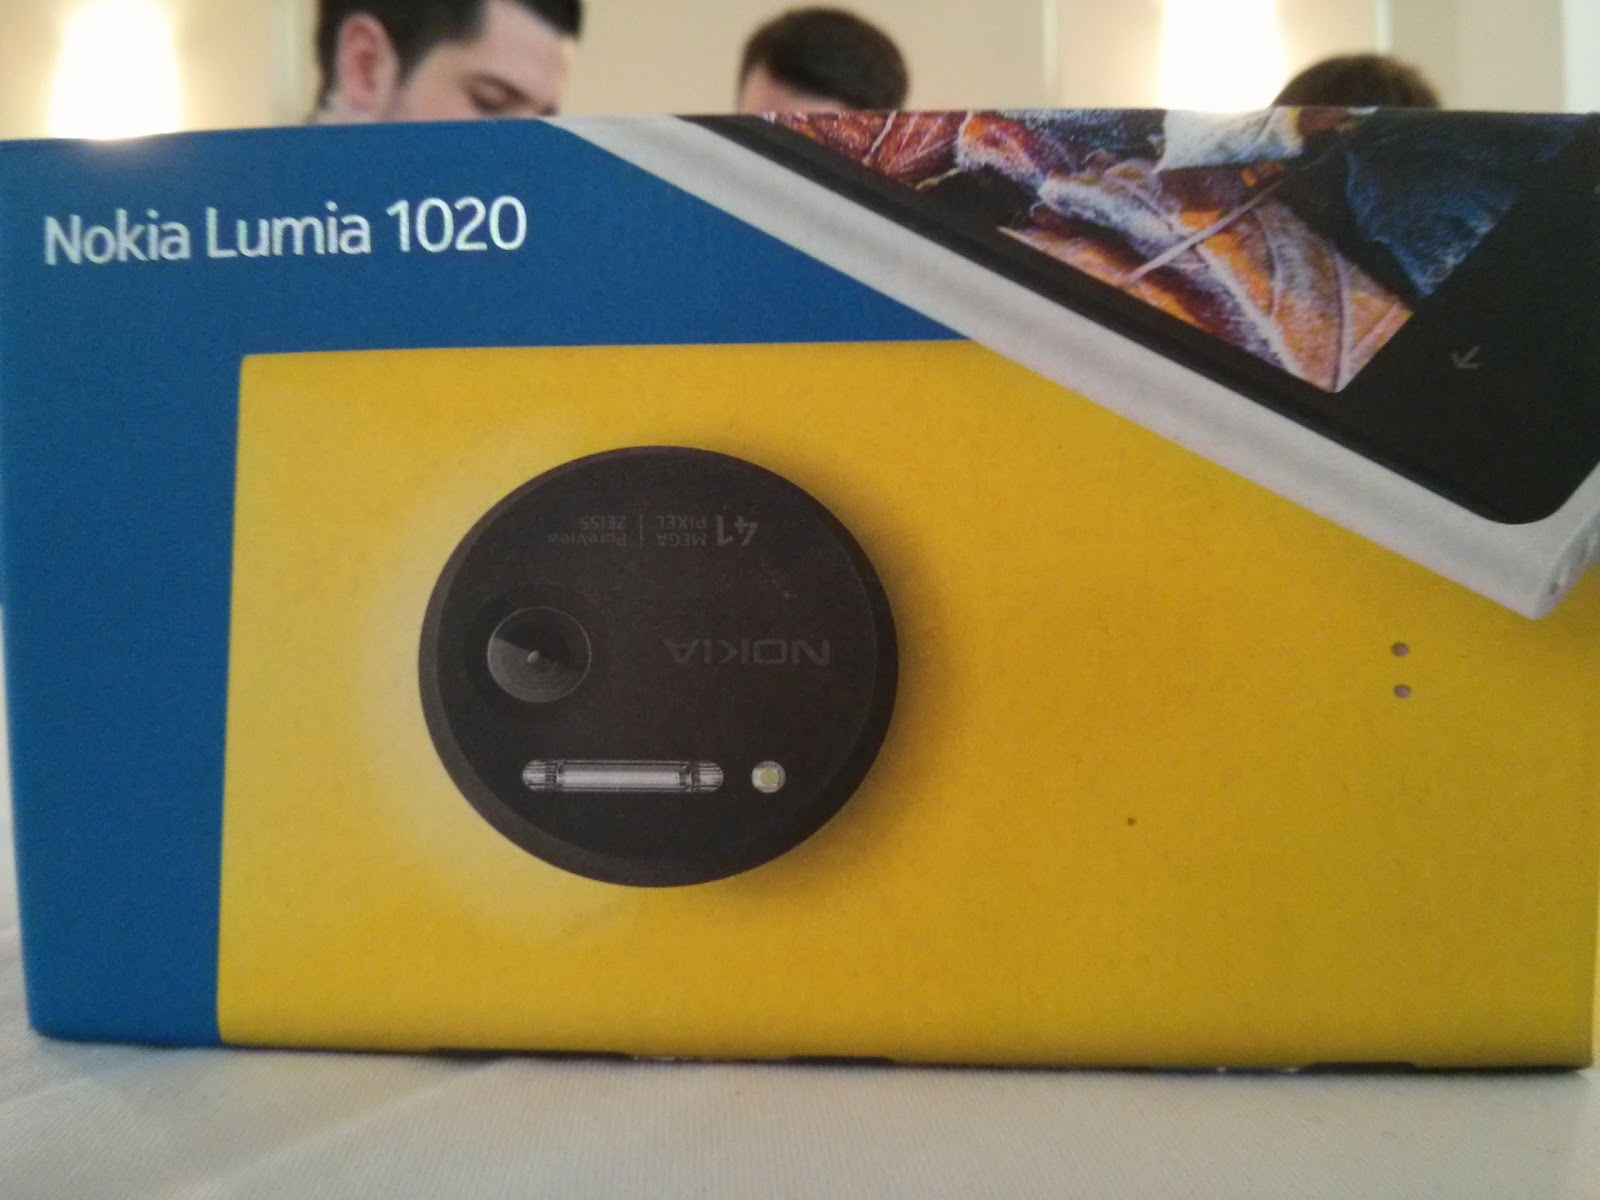 My New Nokia Lumia 1020